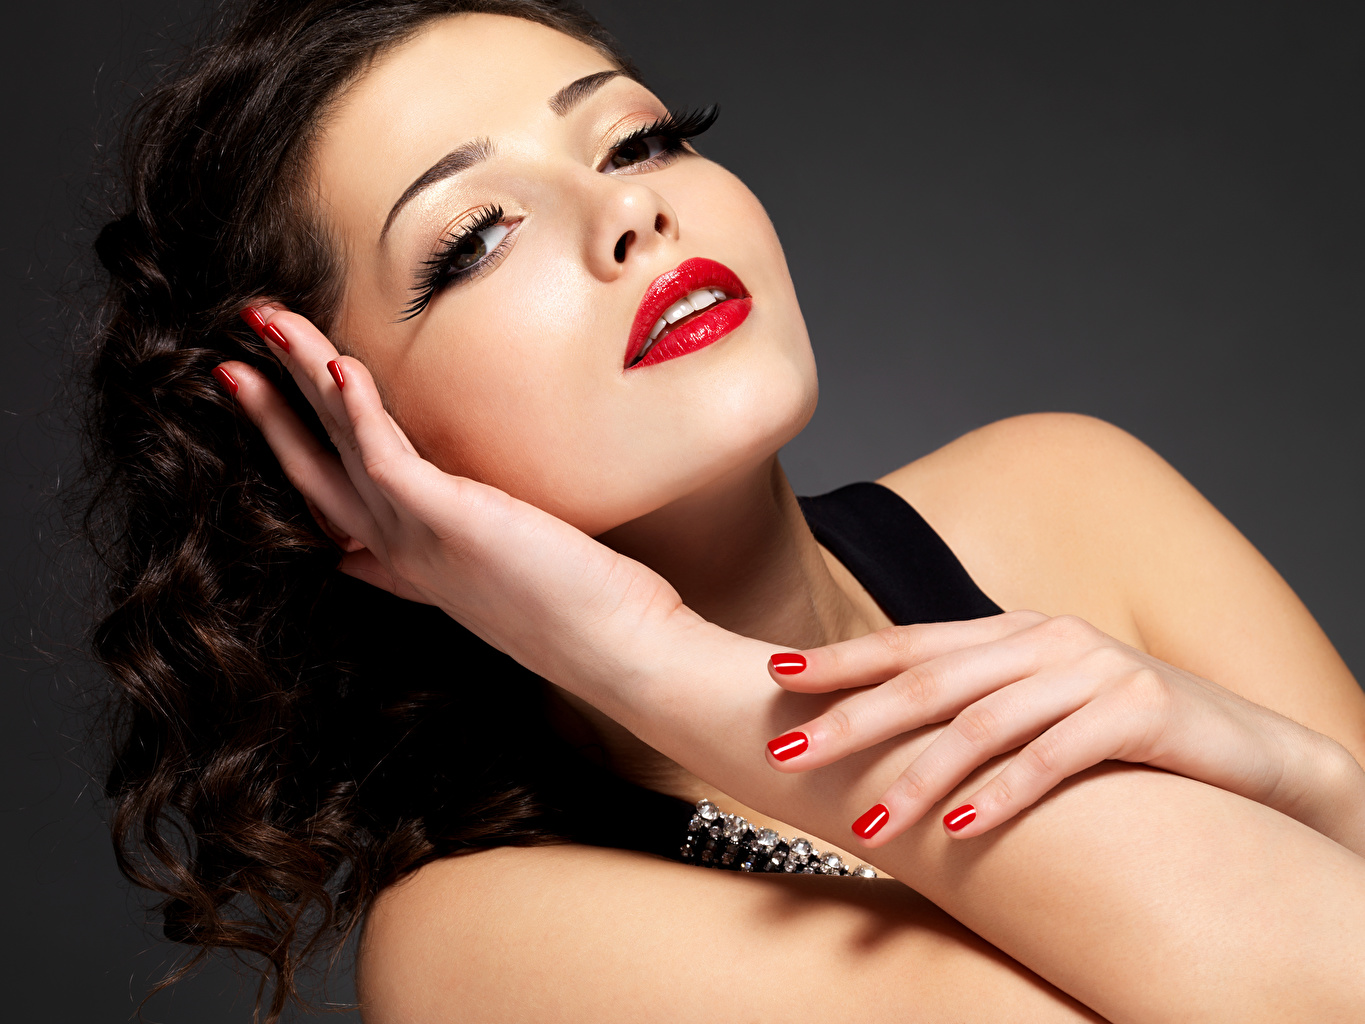 Picture Brunette girl Manicure Makeup Girls Hands Glance Red lips Gray background female young woman Staring